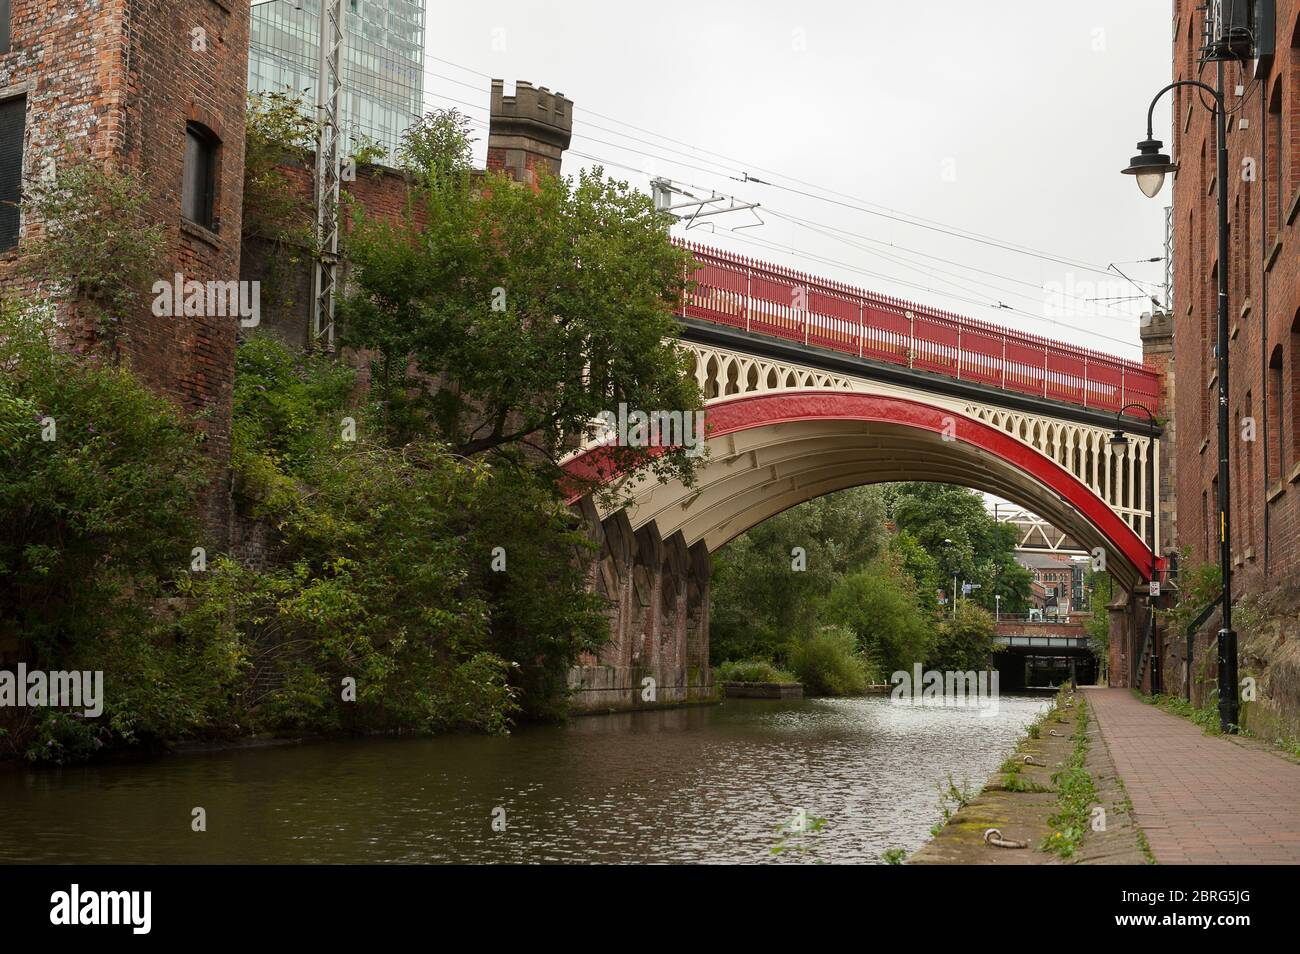 Victorian railway viaducts of the Castlefield Viaduct over the Bridgewater Canal, Manchester, England. Stock Photo